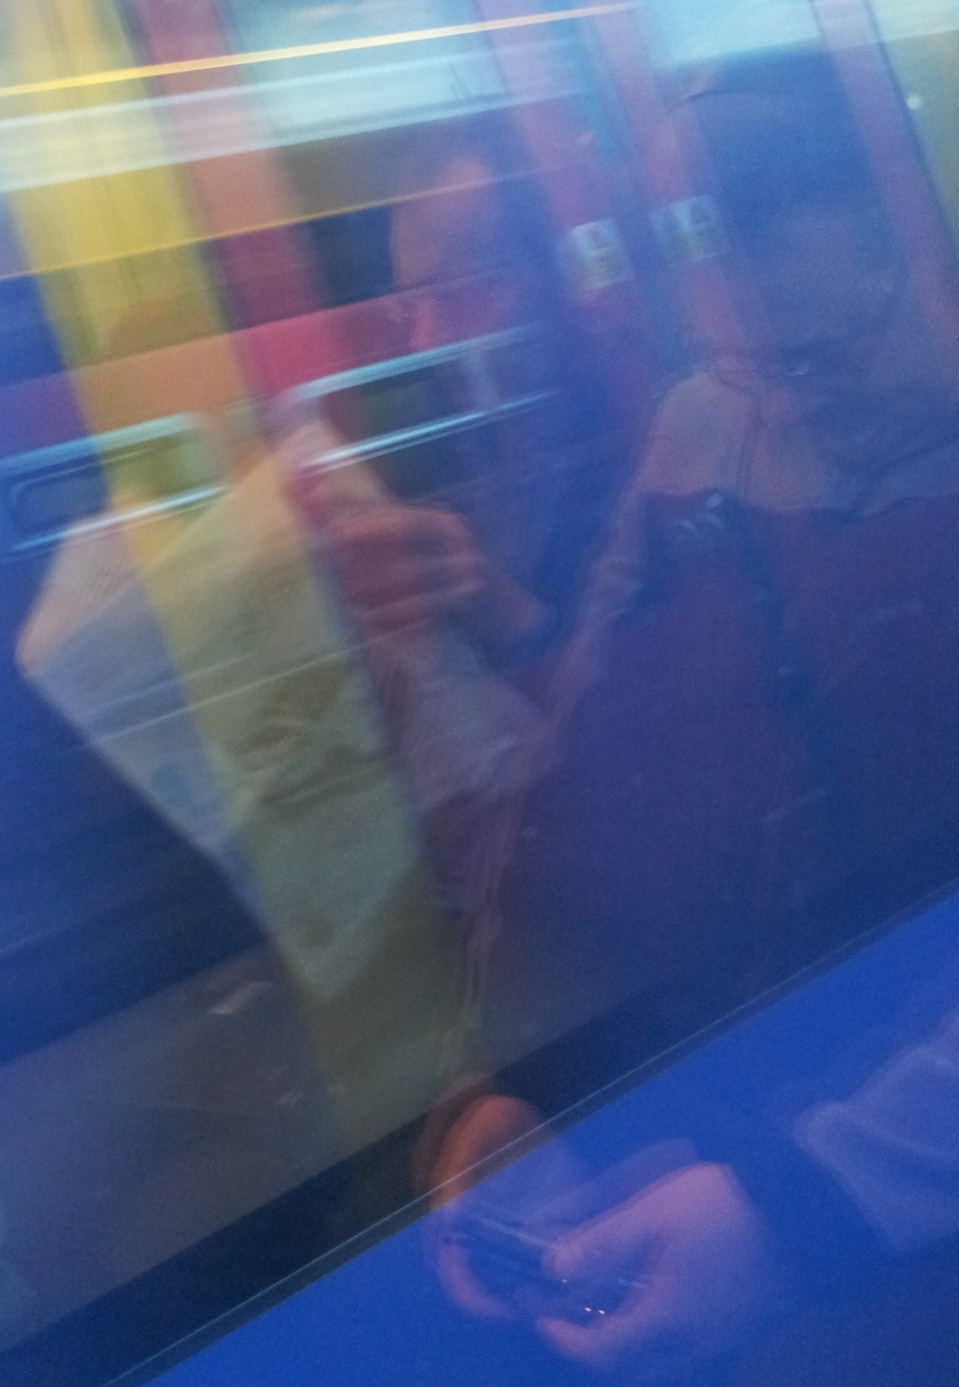 A serendipitous shot with the phone. Two passengers reflected in the window of a train, turned into a mirror by a passing carriage.